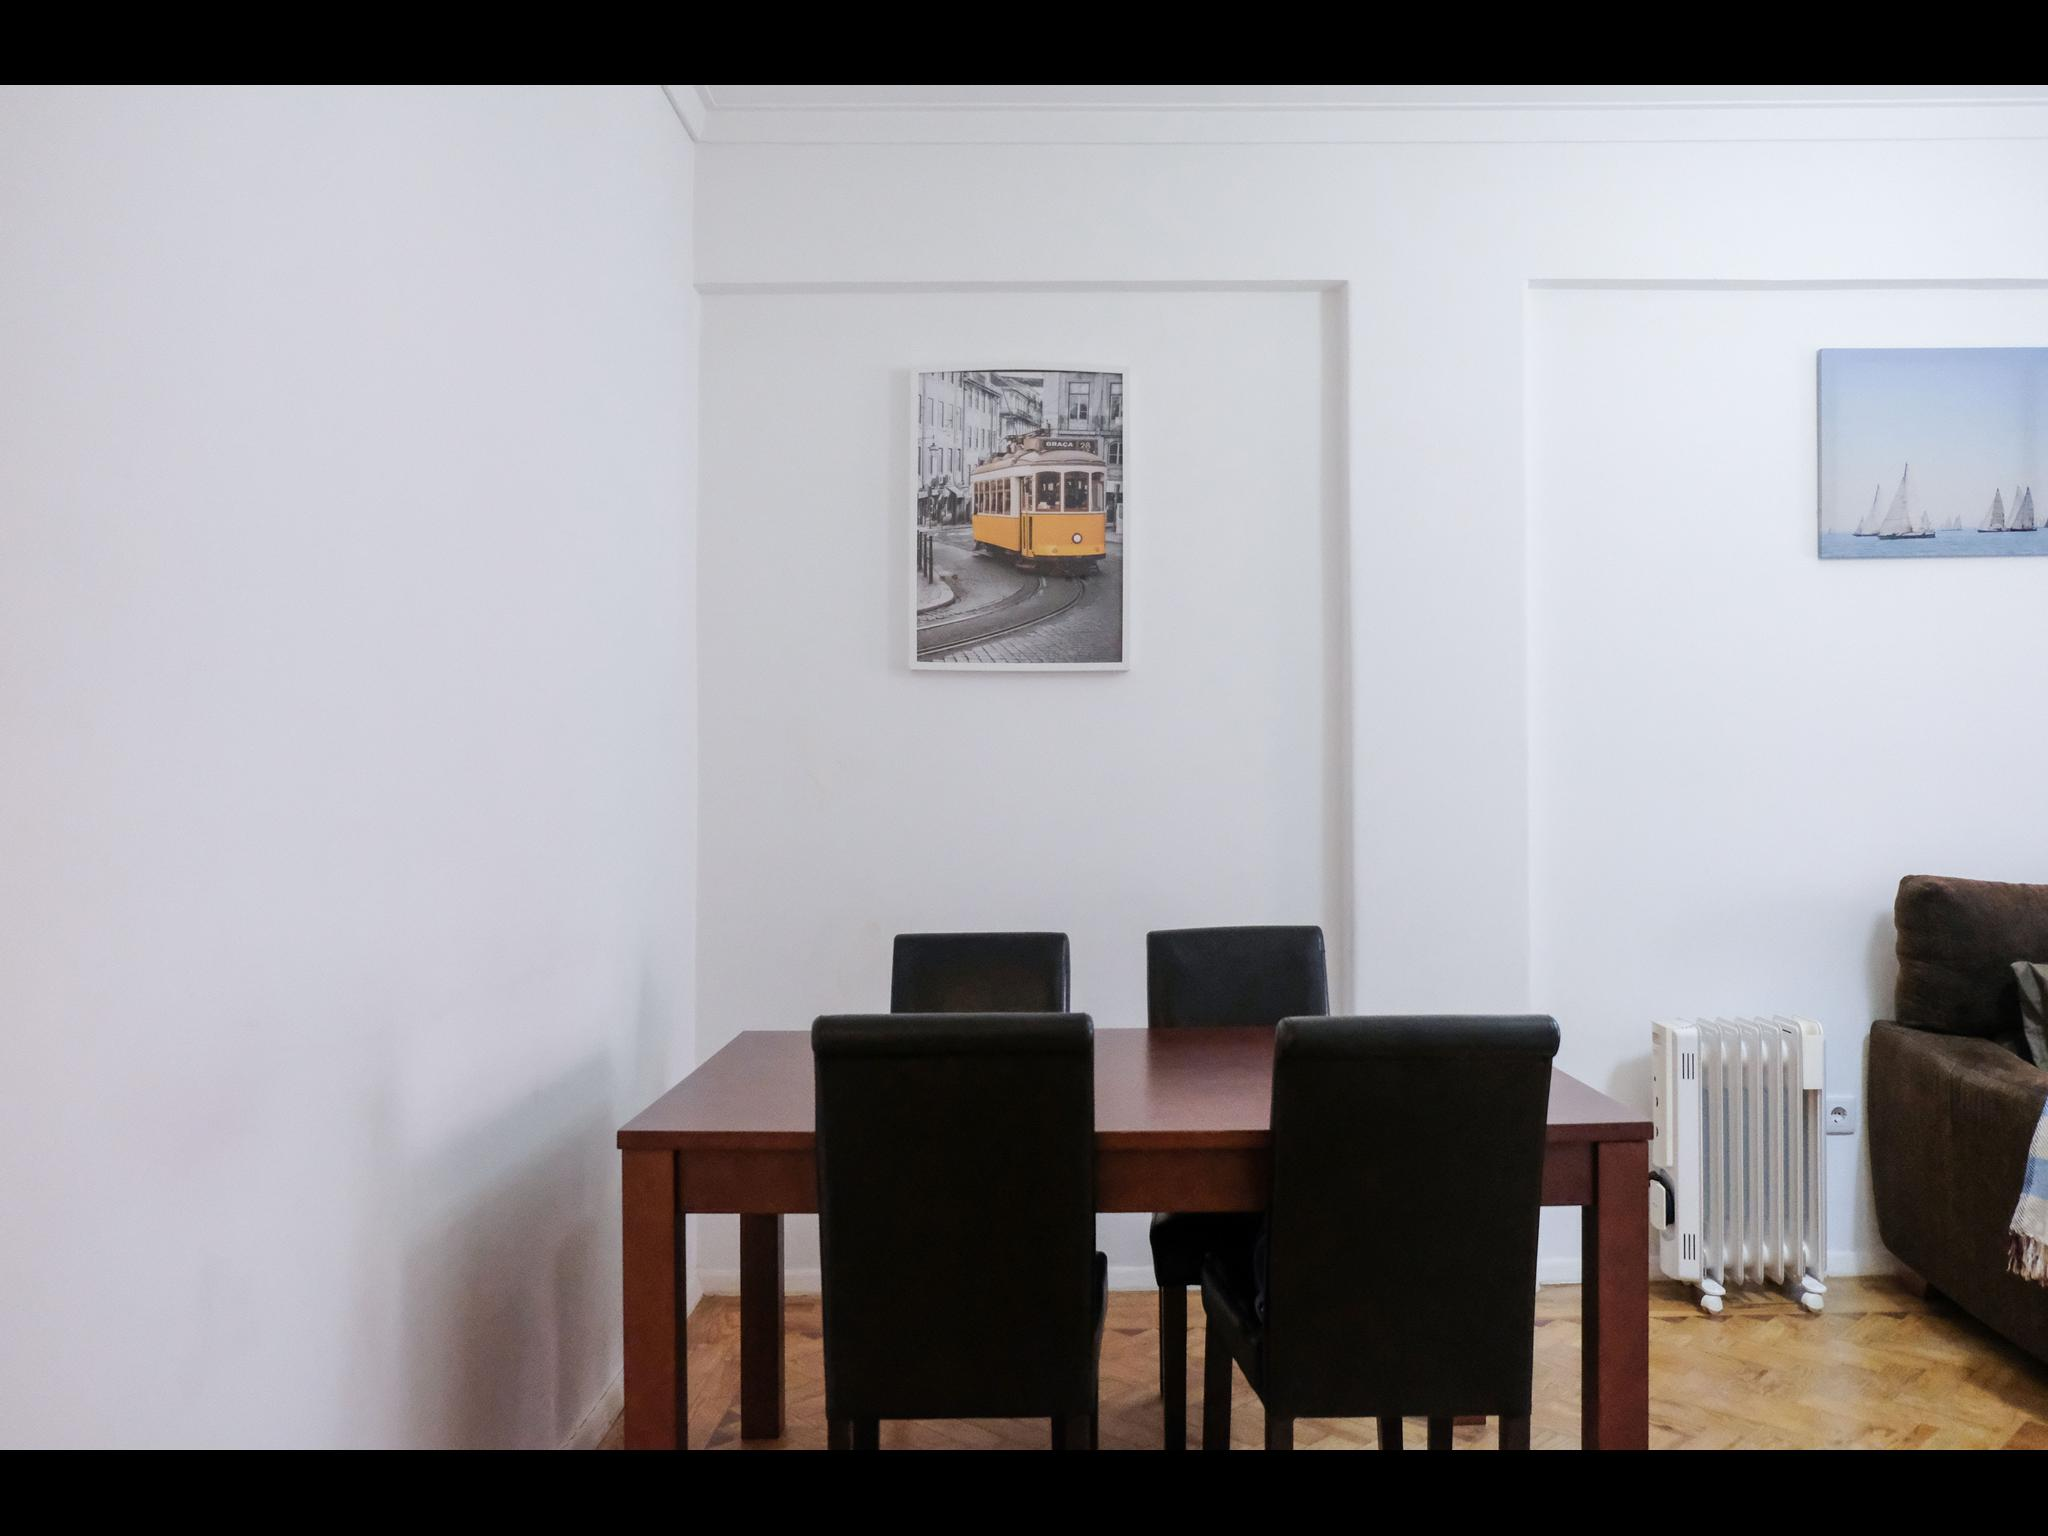 Campolide - 2 bedroom apartment in Lisbon